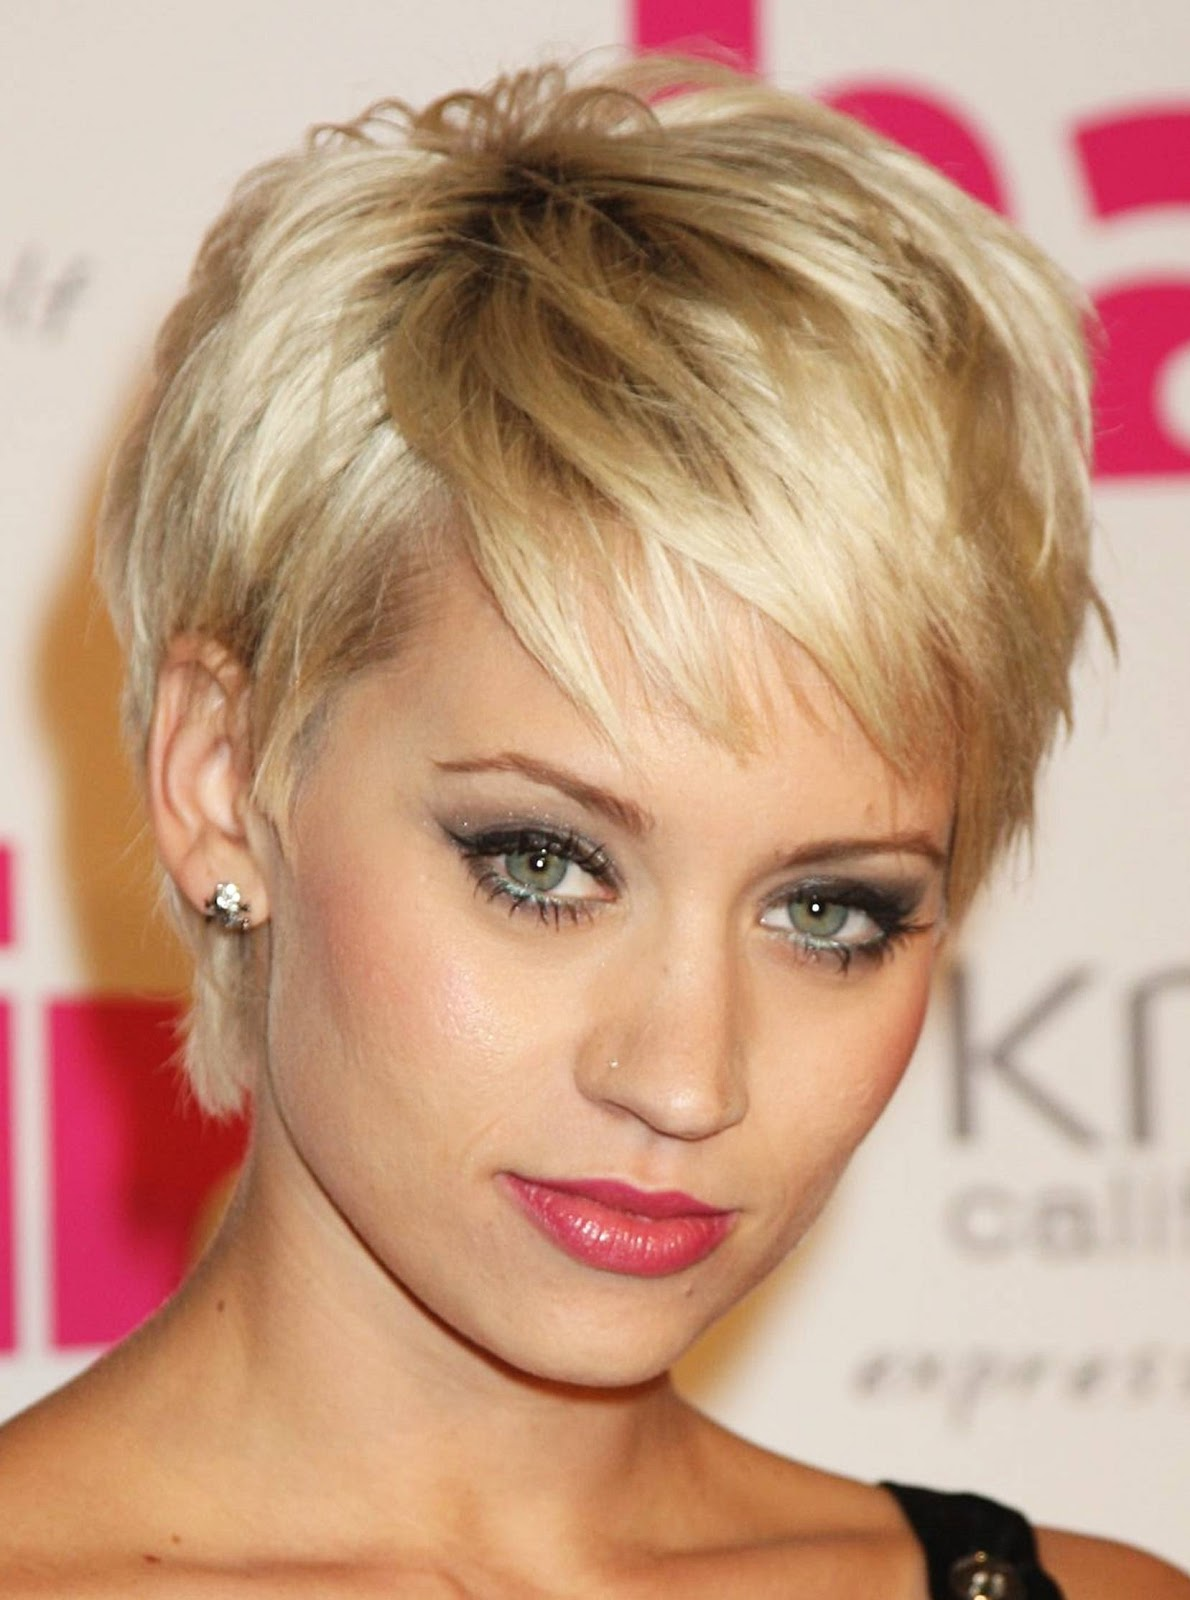 Tremendous Party Hairstyles For Short Hair Medium Hairstyle Fashions Short Hairstyles Gunalazisus